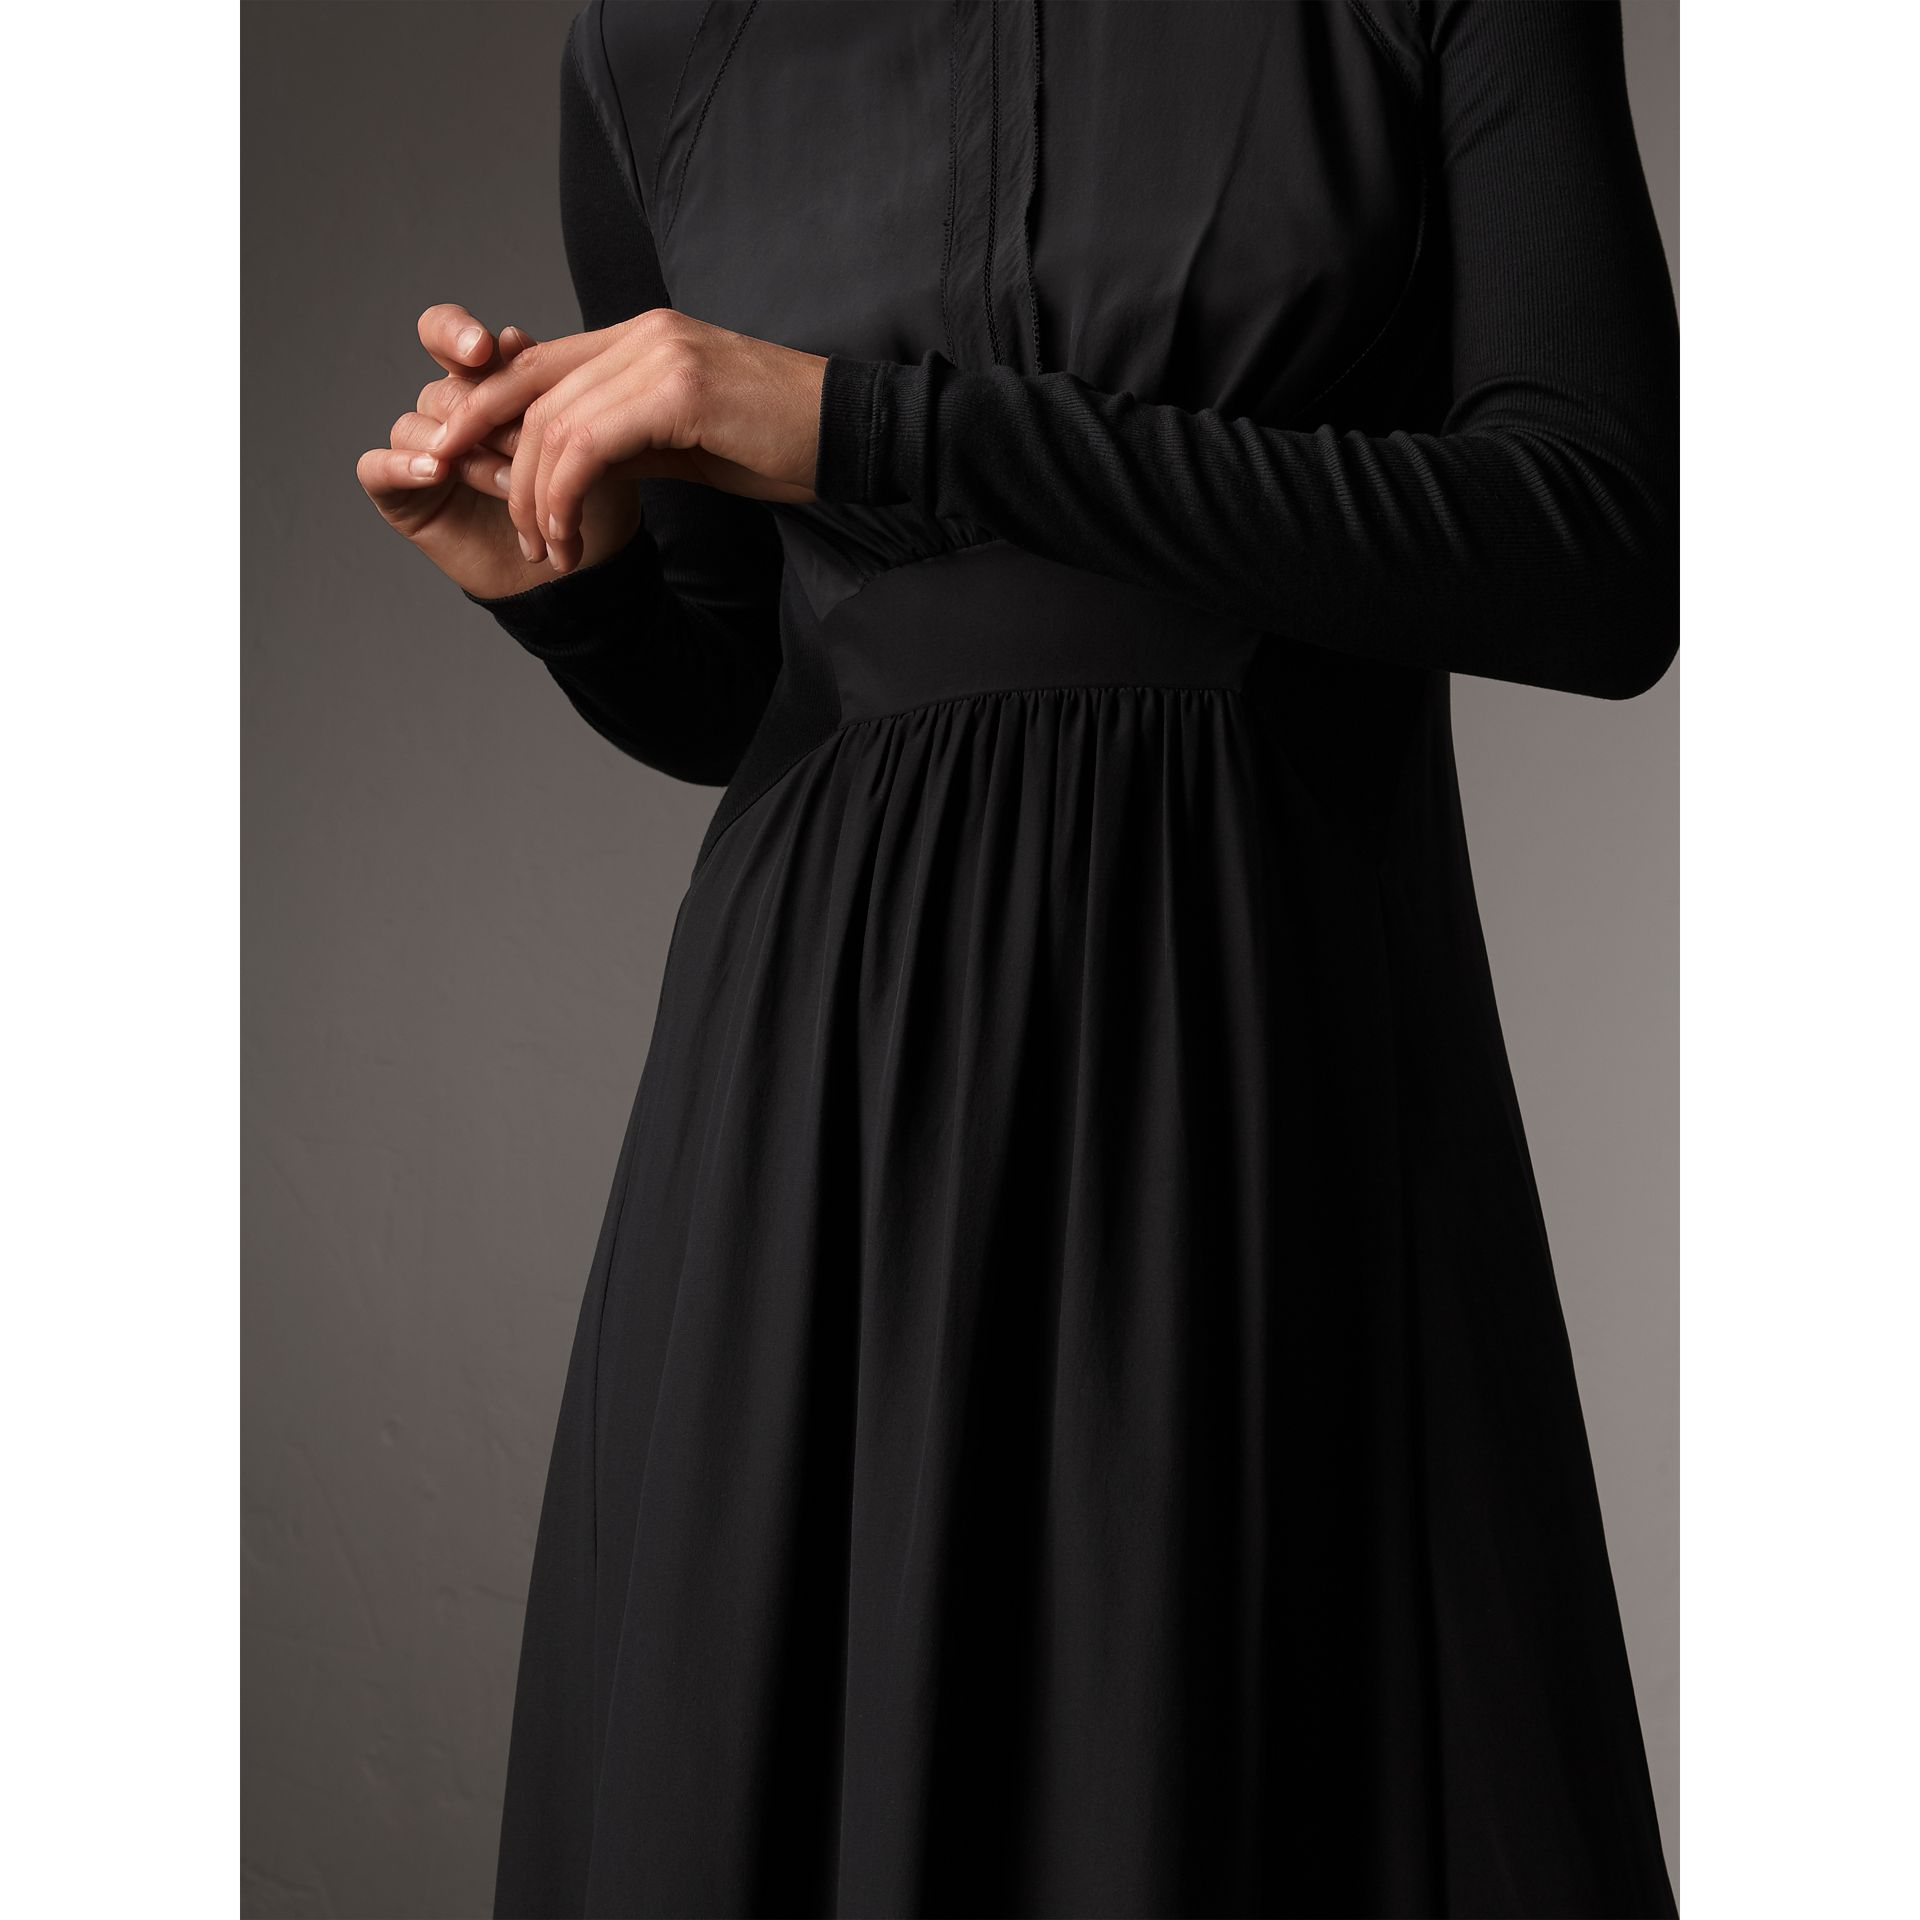 Silk Floor-length Gathered Dress in Black - Women | Burberry Singapore - gallery image 2